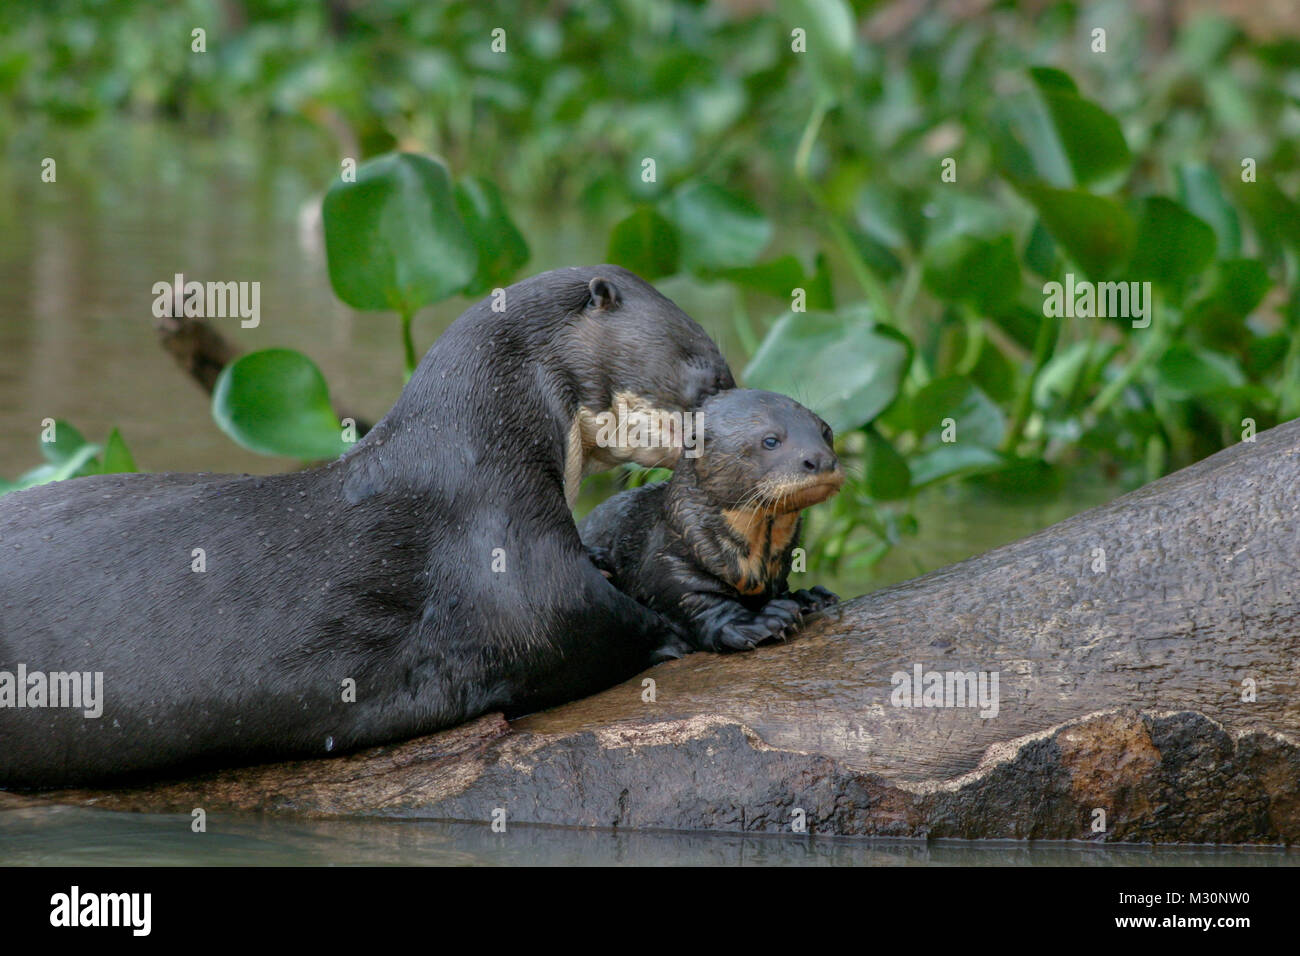 A mother and baby Giant Otter resting on a tree in the Pantanal, Mato Grosso Do Sul region of Brazil - Stock Image